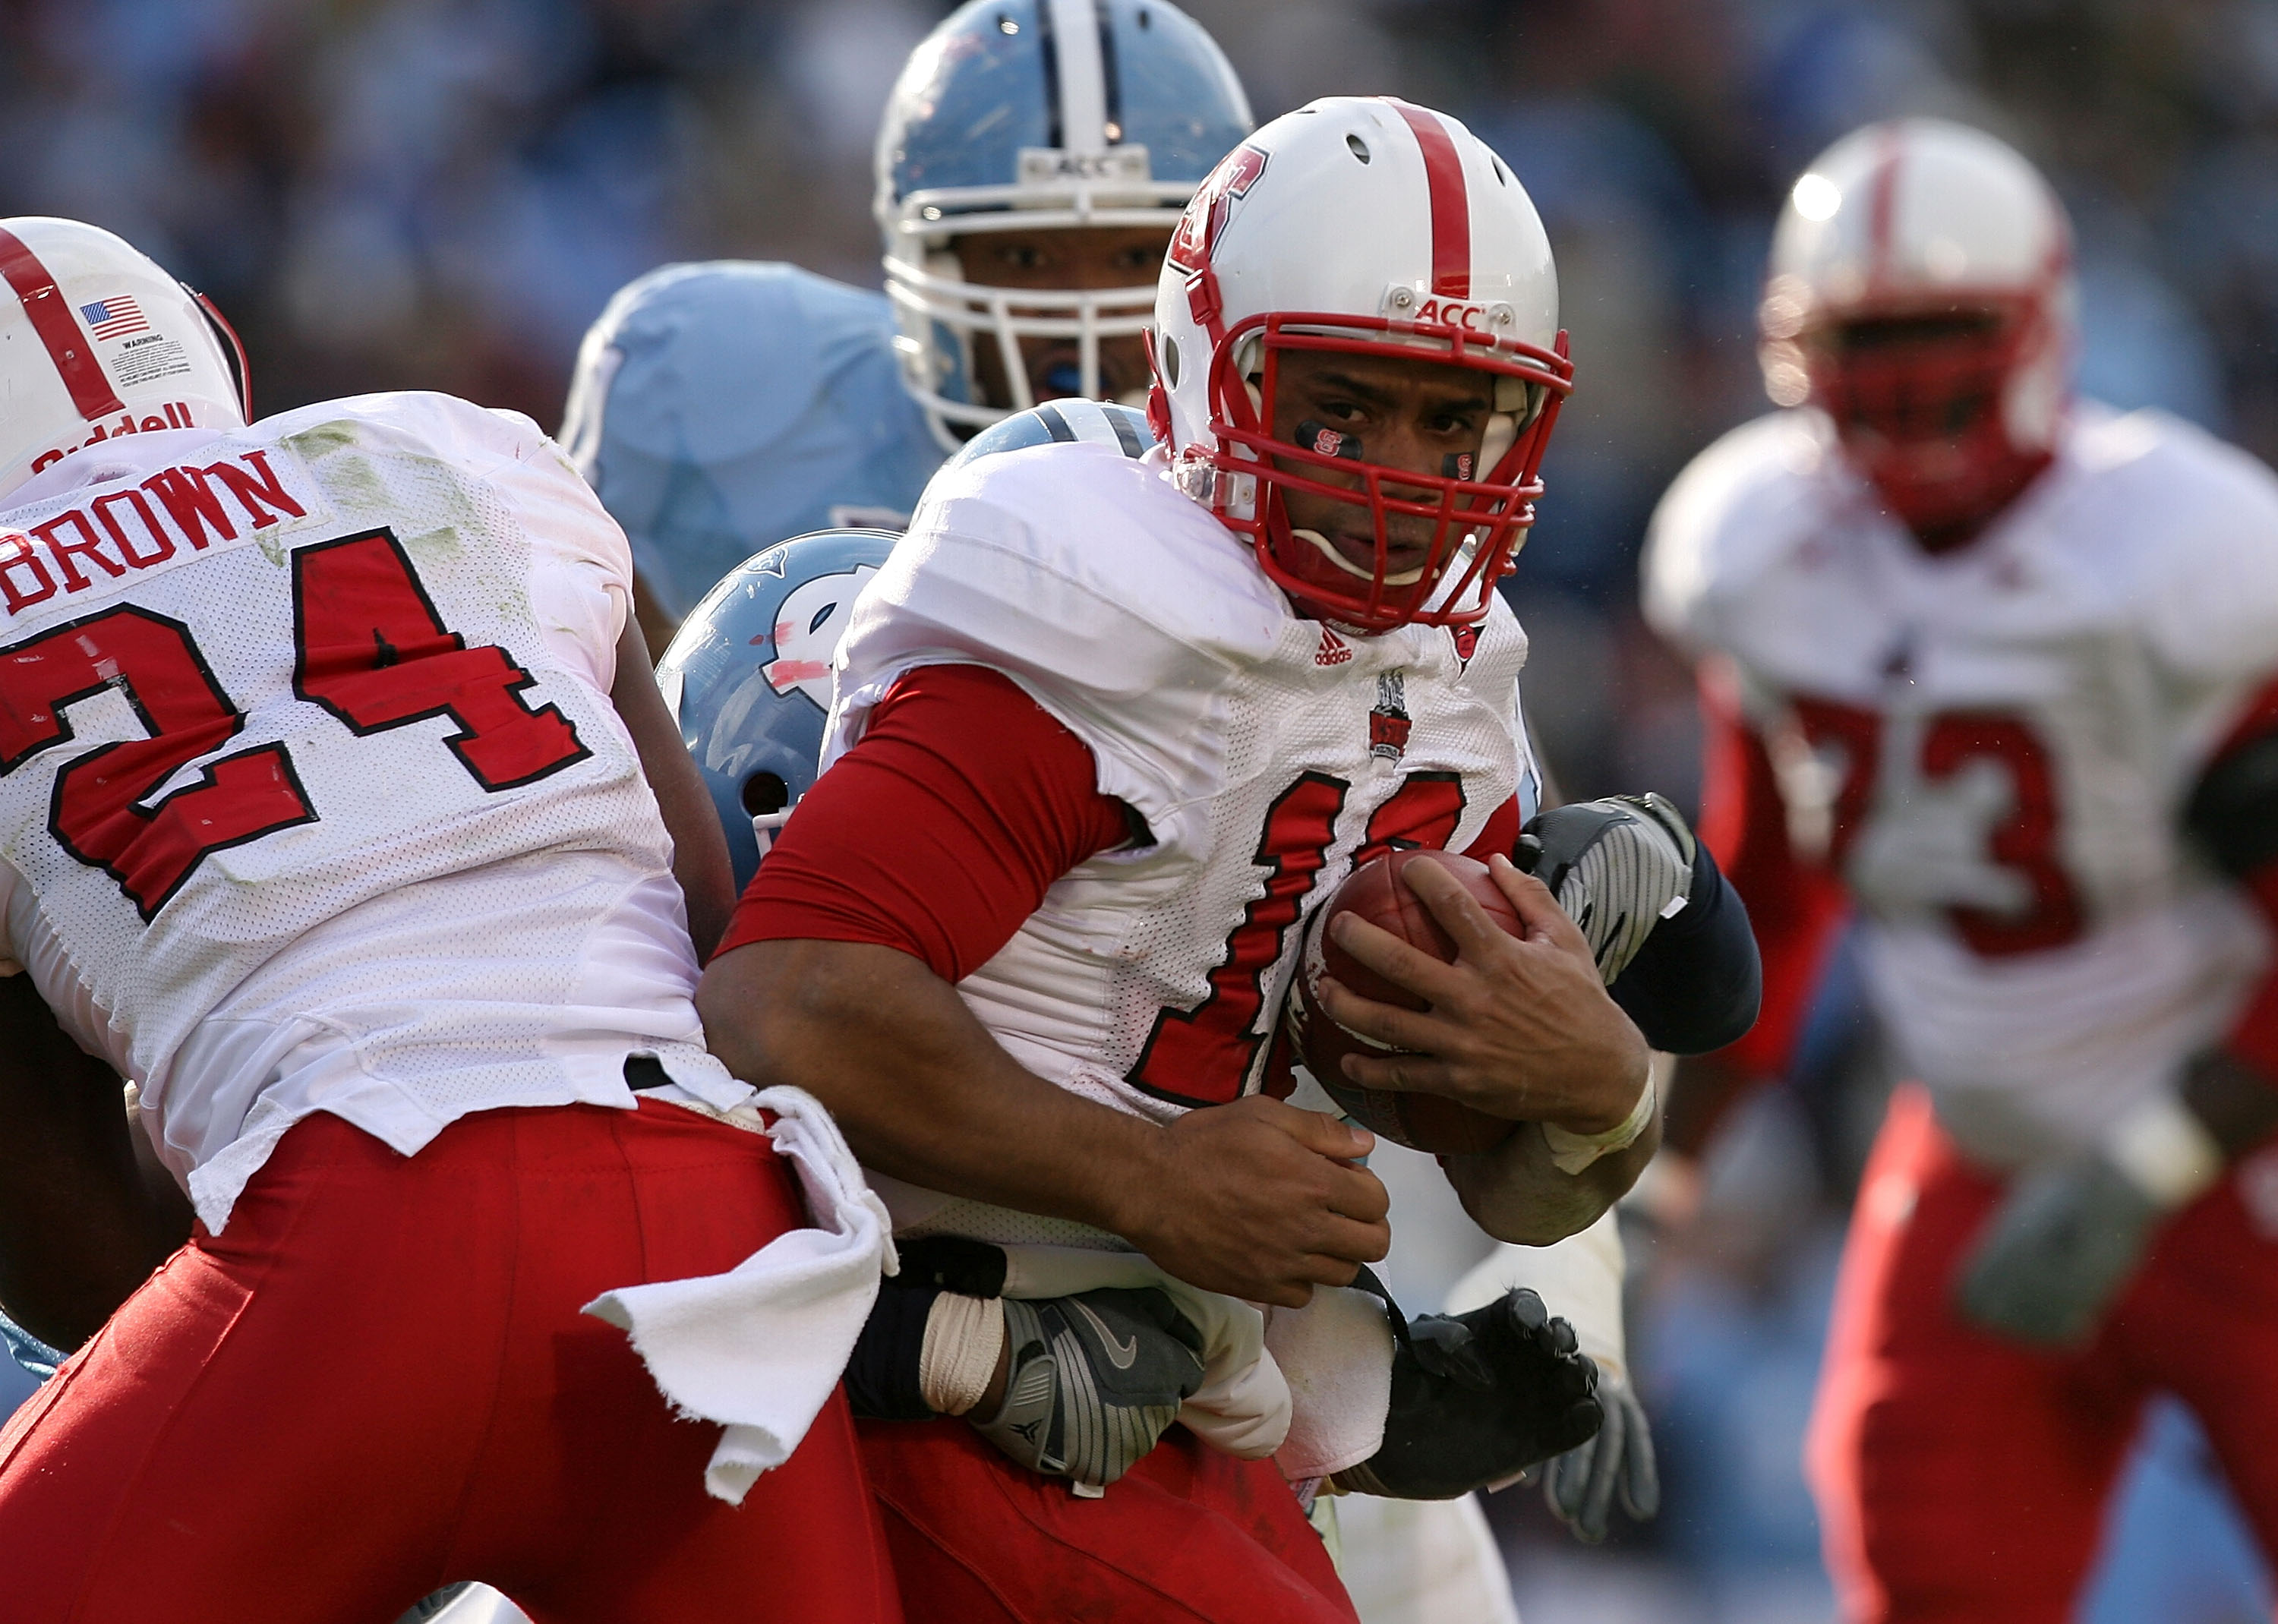 CHAPEL HILL, NC - NOVEMBER 22:  Russell Wilson #16 of the North Carolina State Wolfpack runs with the ball against the North Carolina Tar Heels at Kenan Stadium on November 22, 2008 in Chapel Hill, North Carolina.  (Photo by Streeter Lecka/Getty Images)